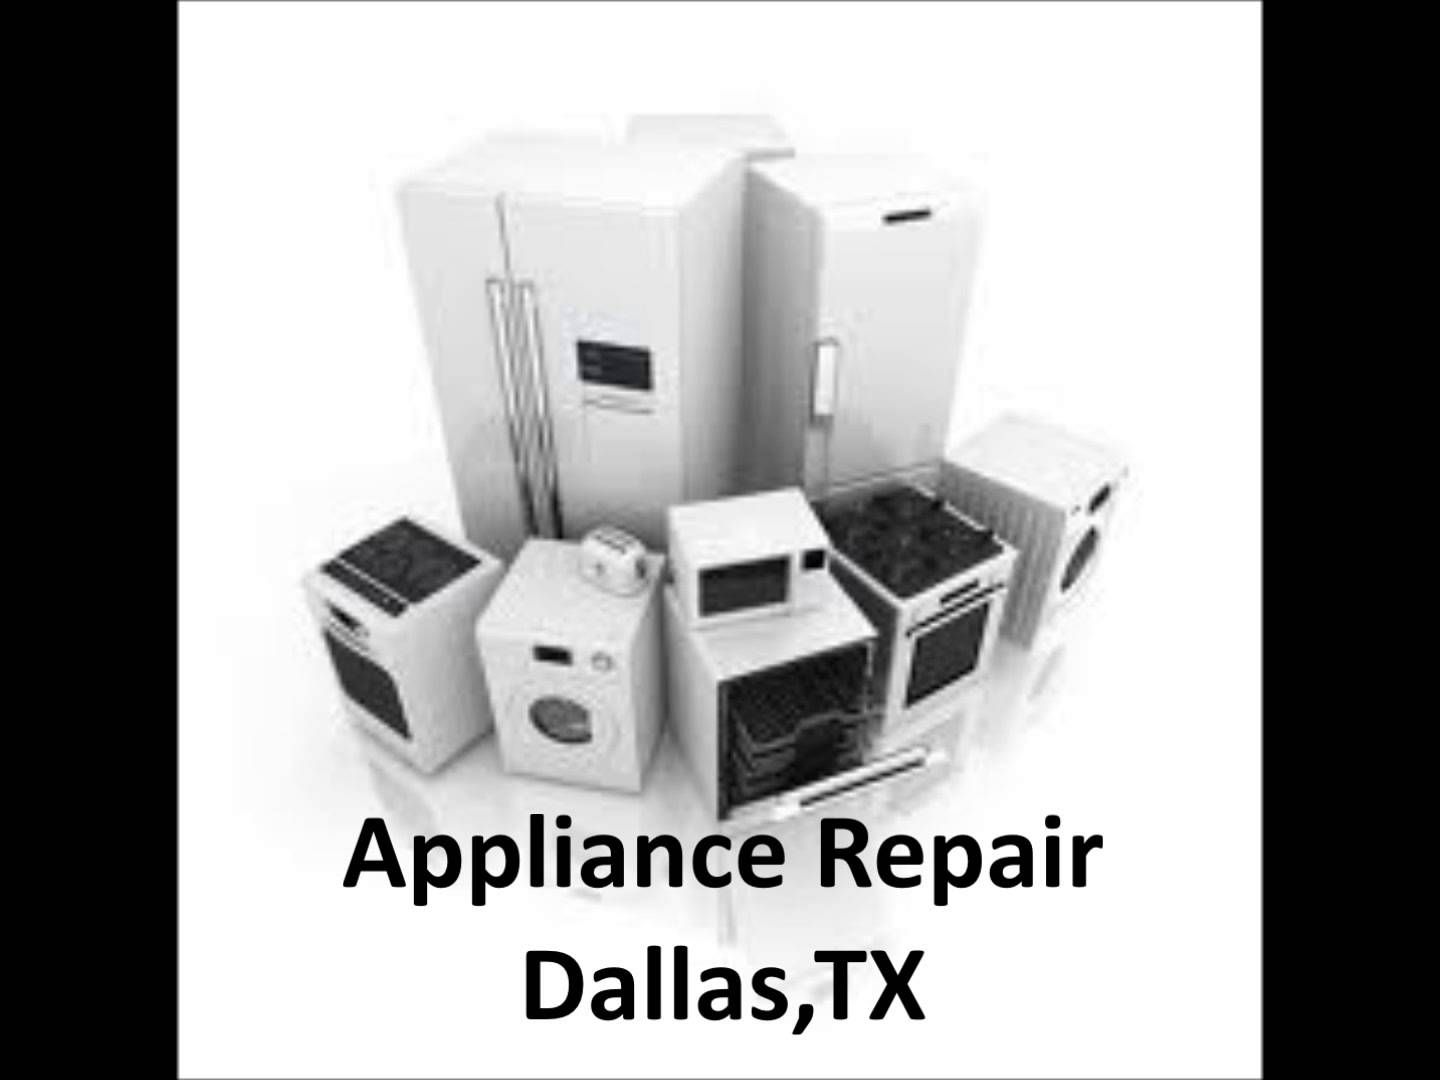 Pin by holmesjo on washer repair dallas pinterest appliance